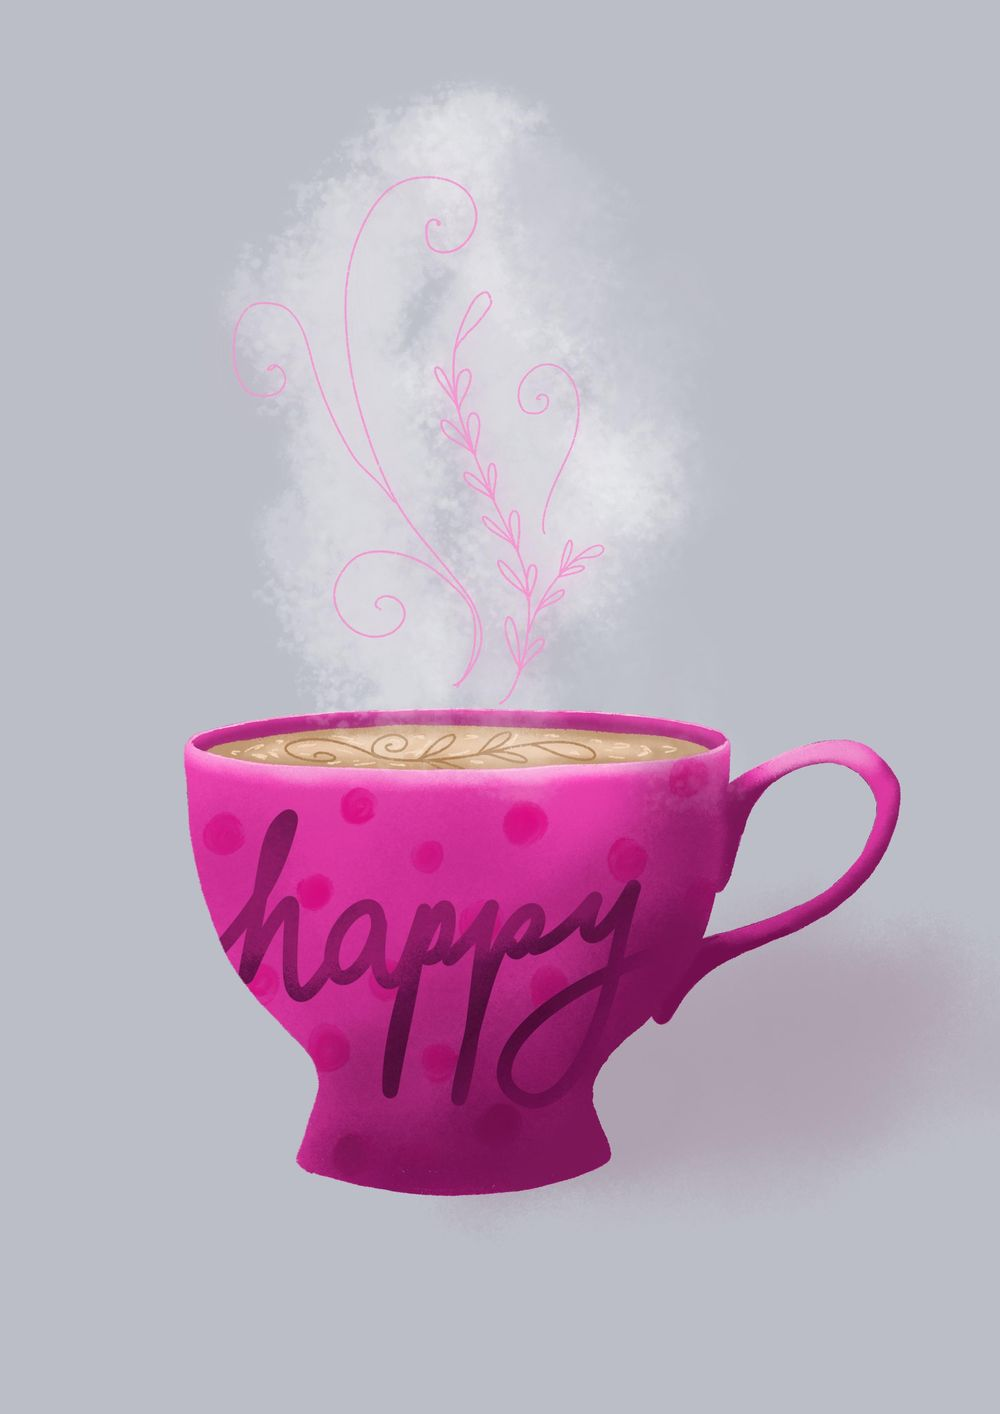 Happy cup - image 1 - student project